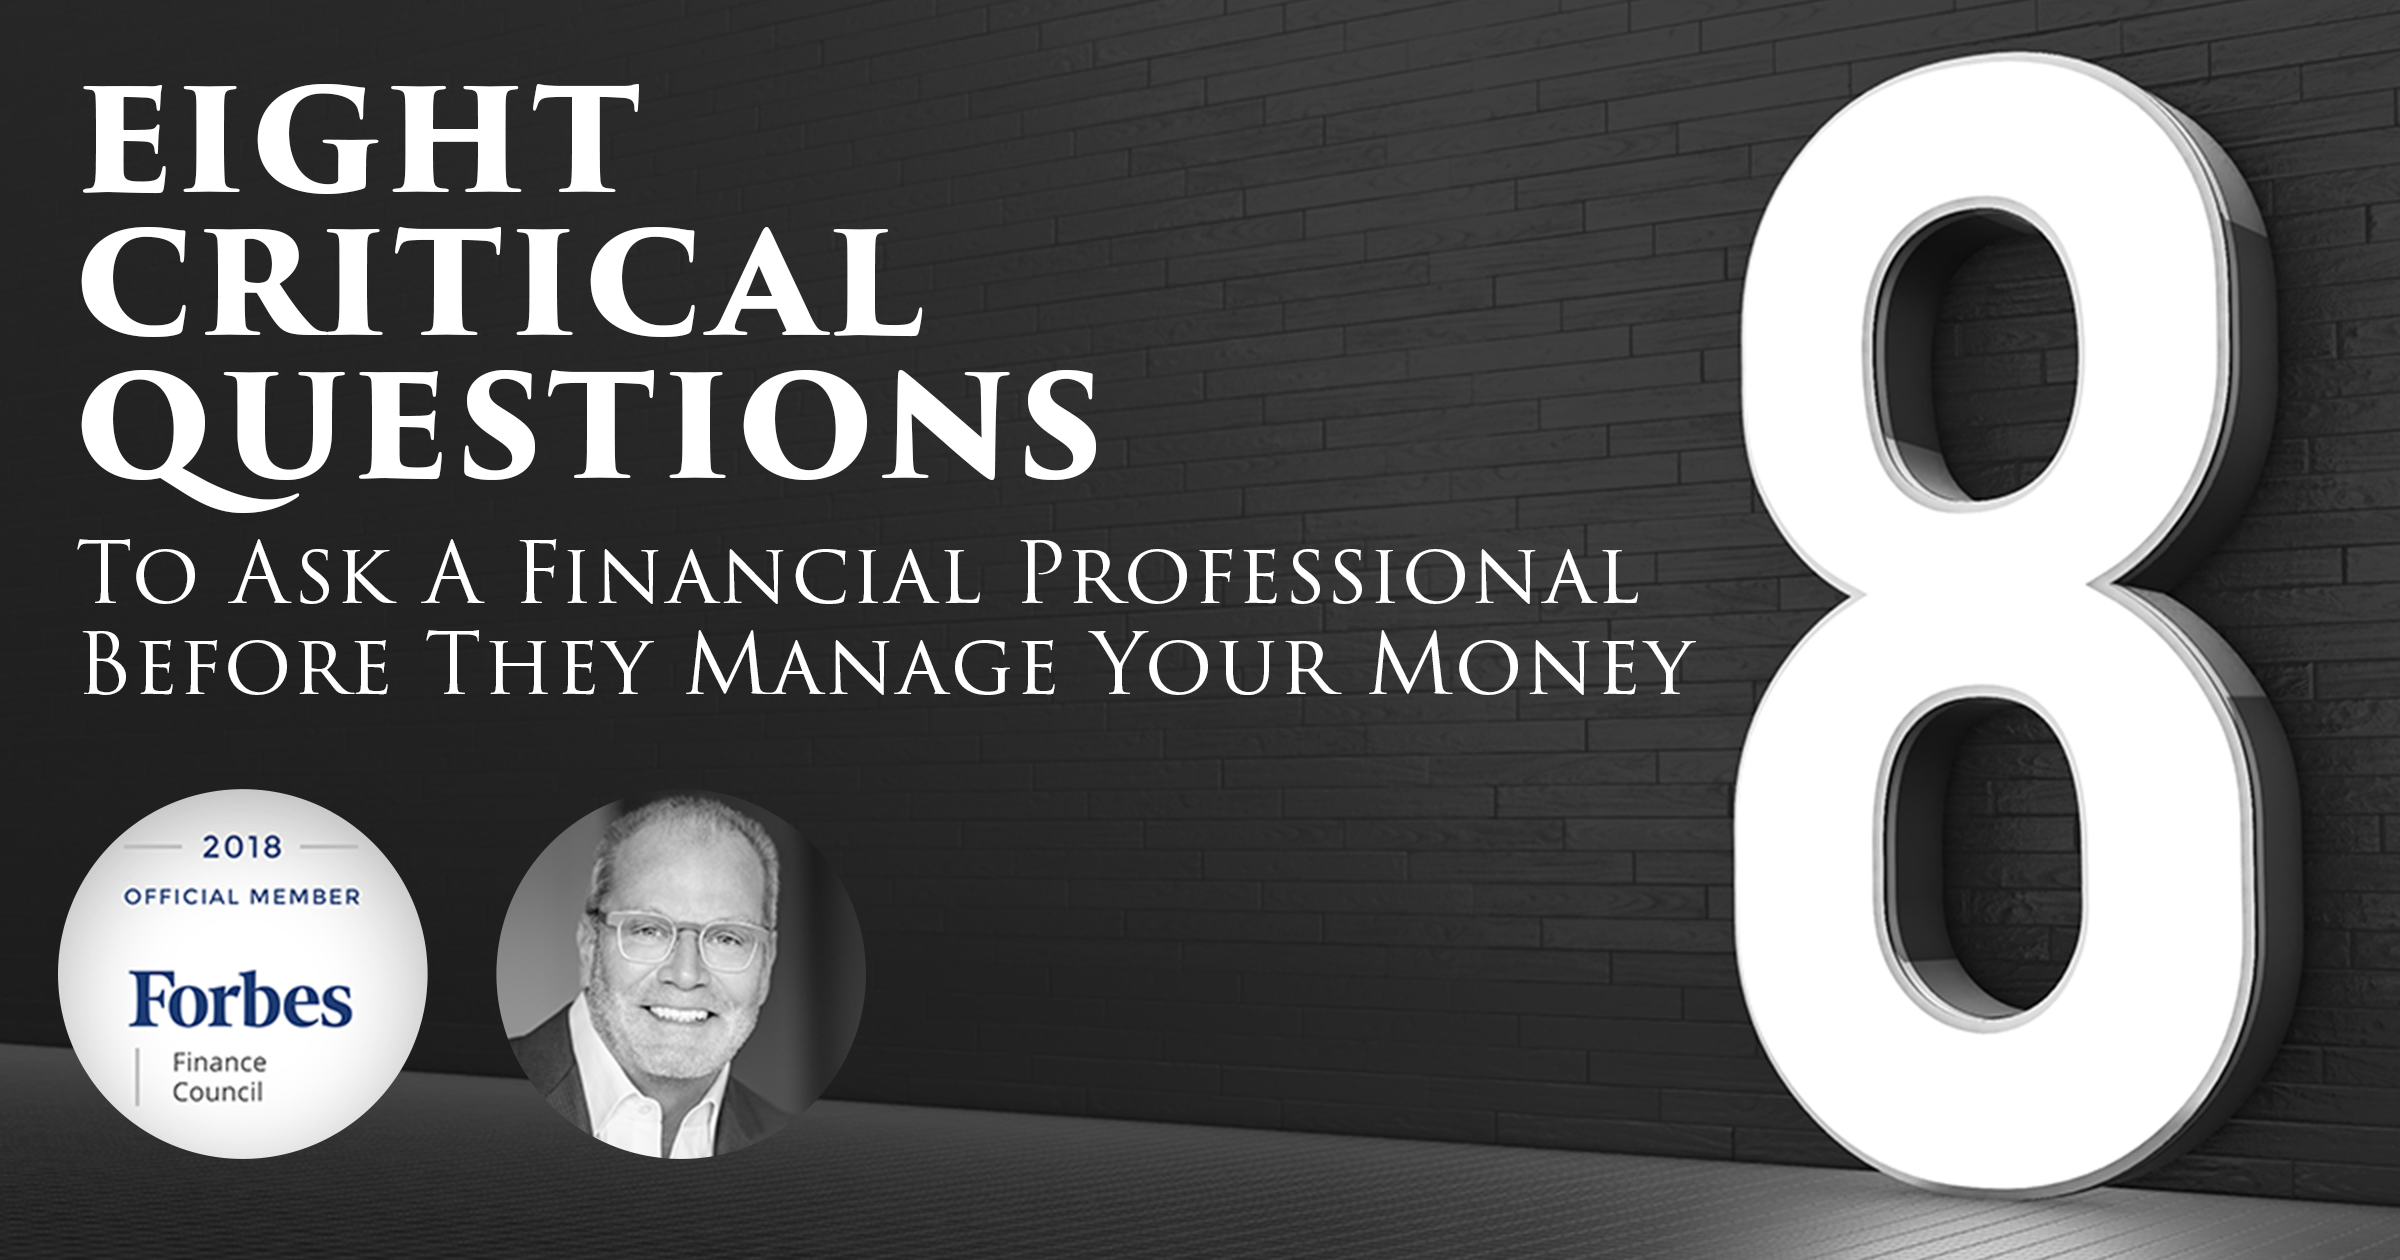 Eight Critical Questions To Ask A Financial Professional Before They Manage Your Money